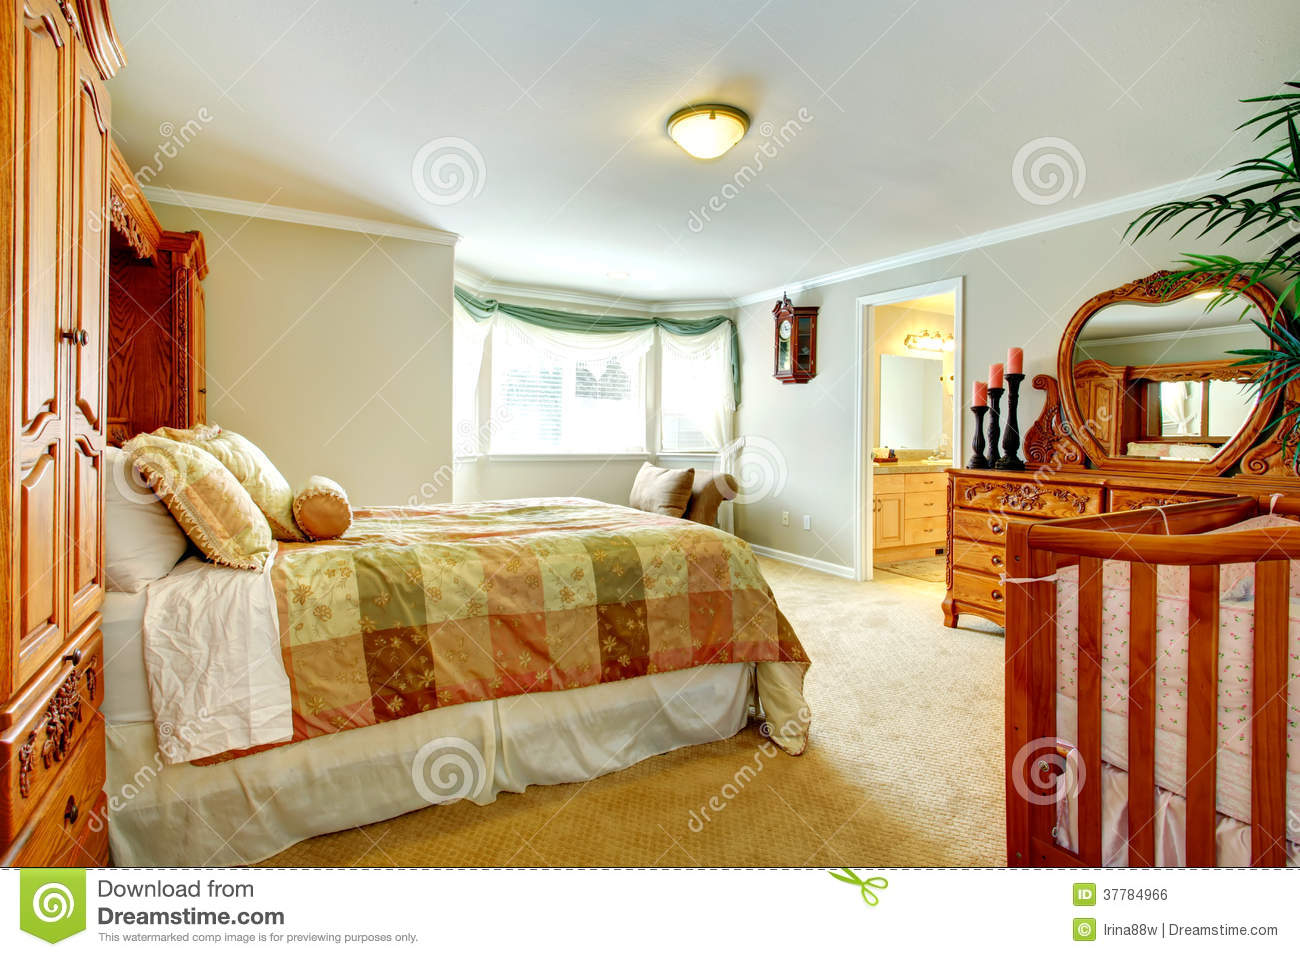 Bright living room with carved wood furniture royalty free stock image